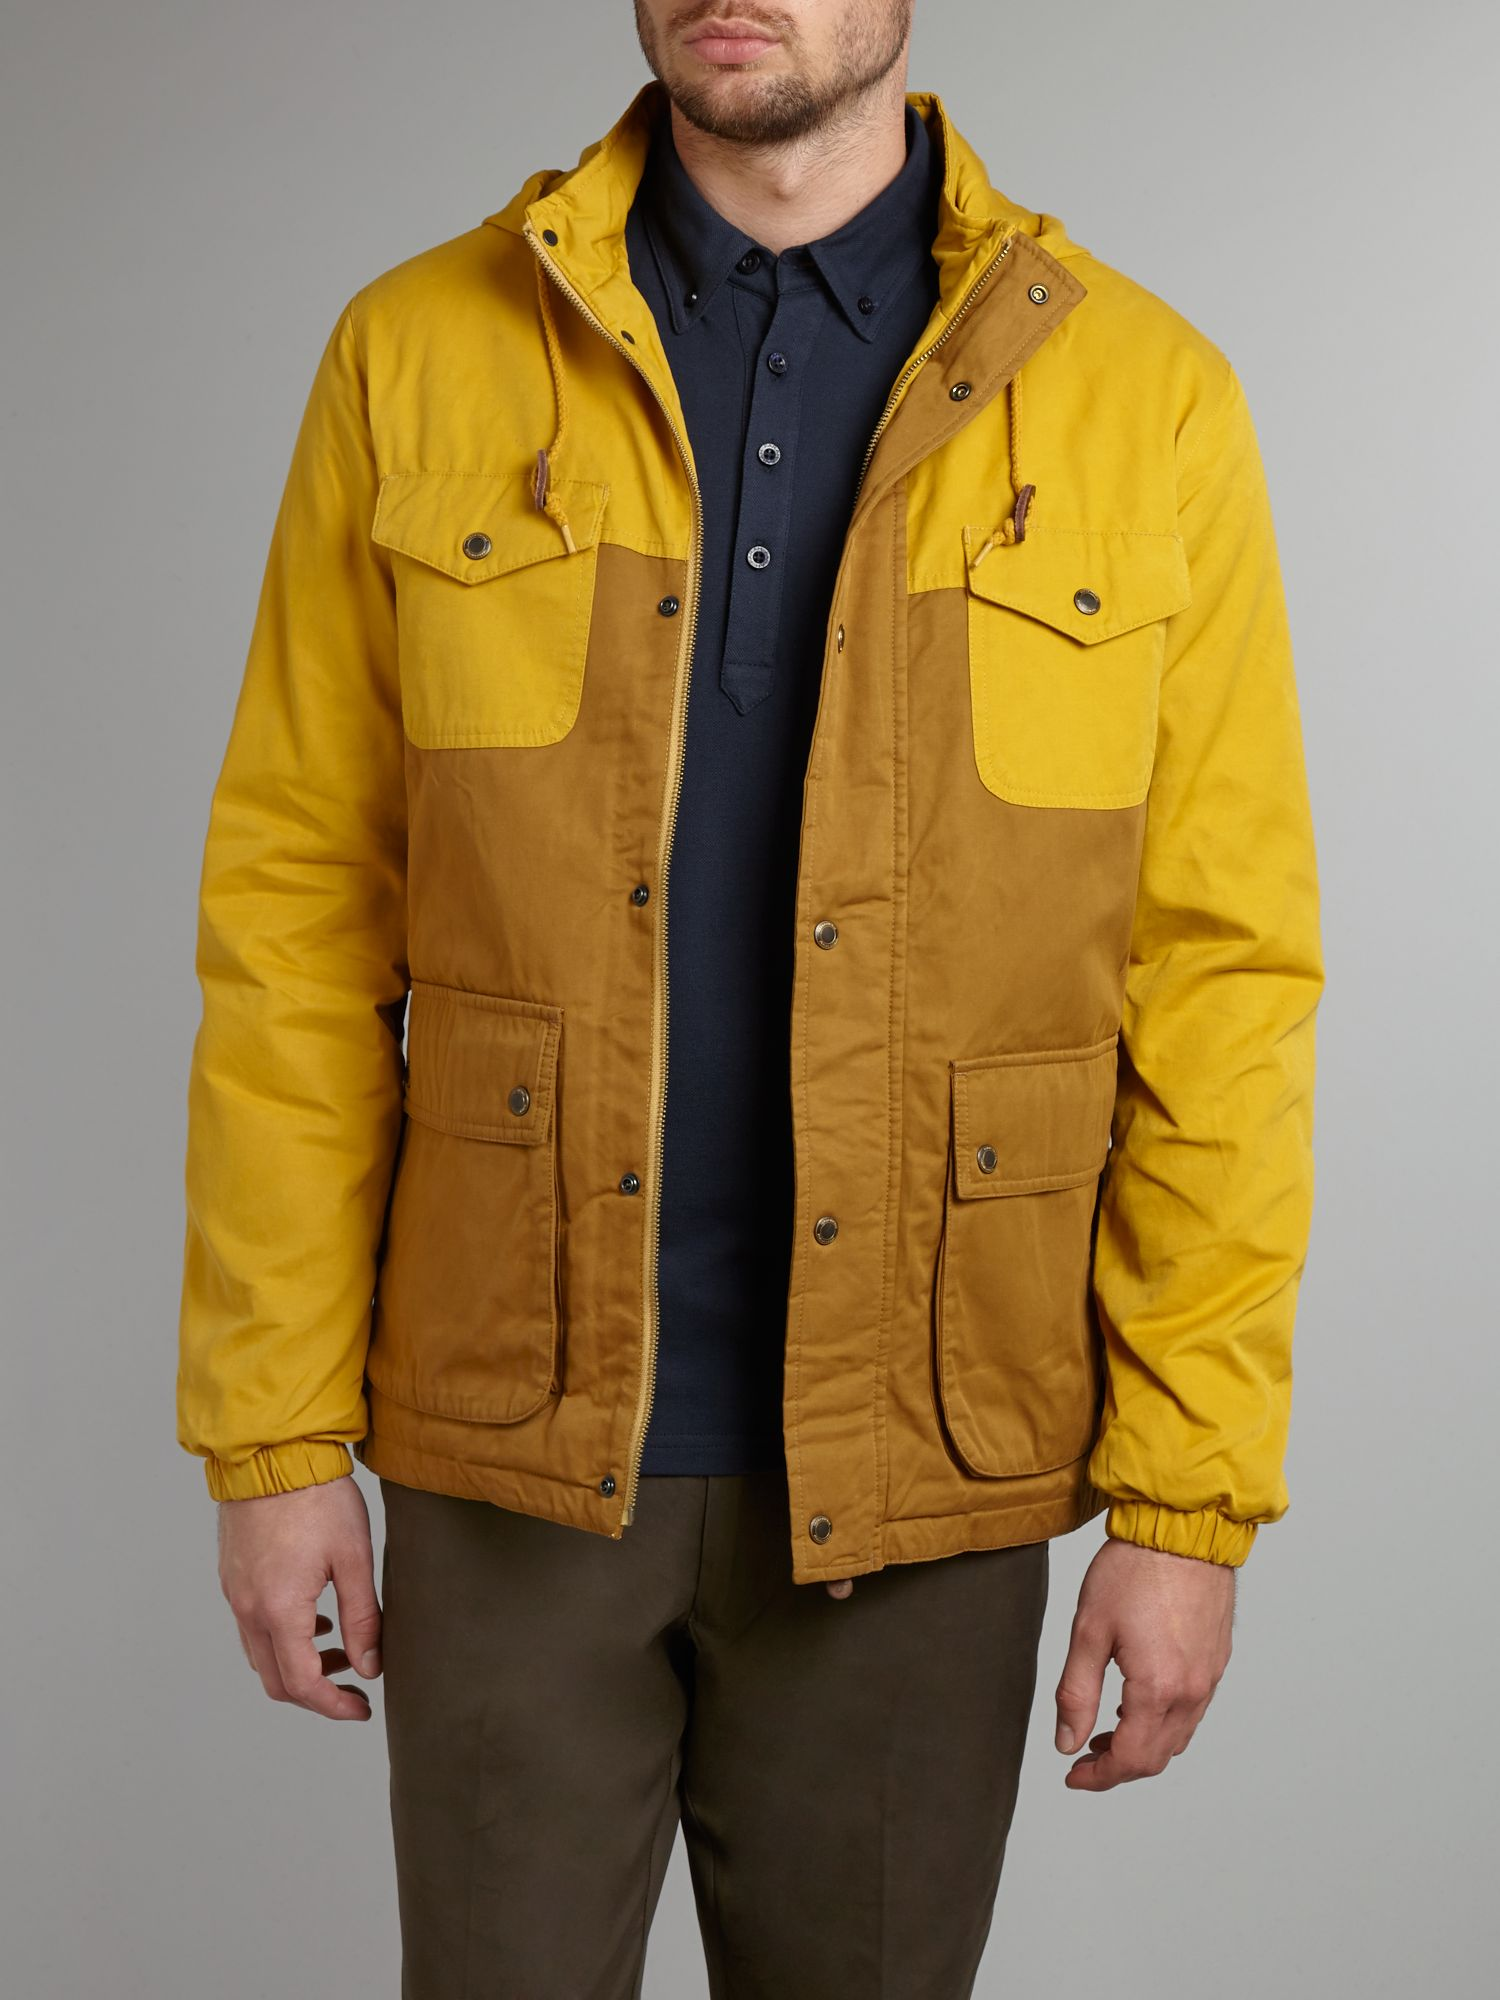 Livingstone jacket